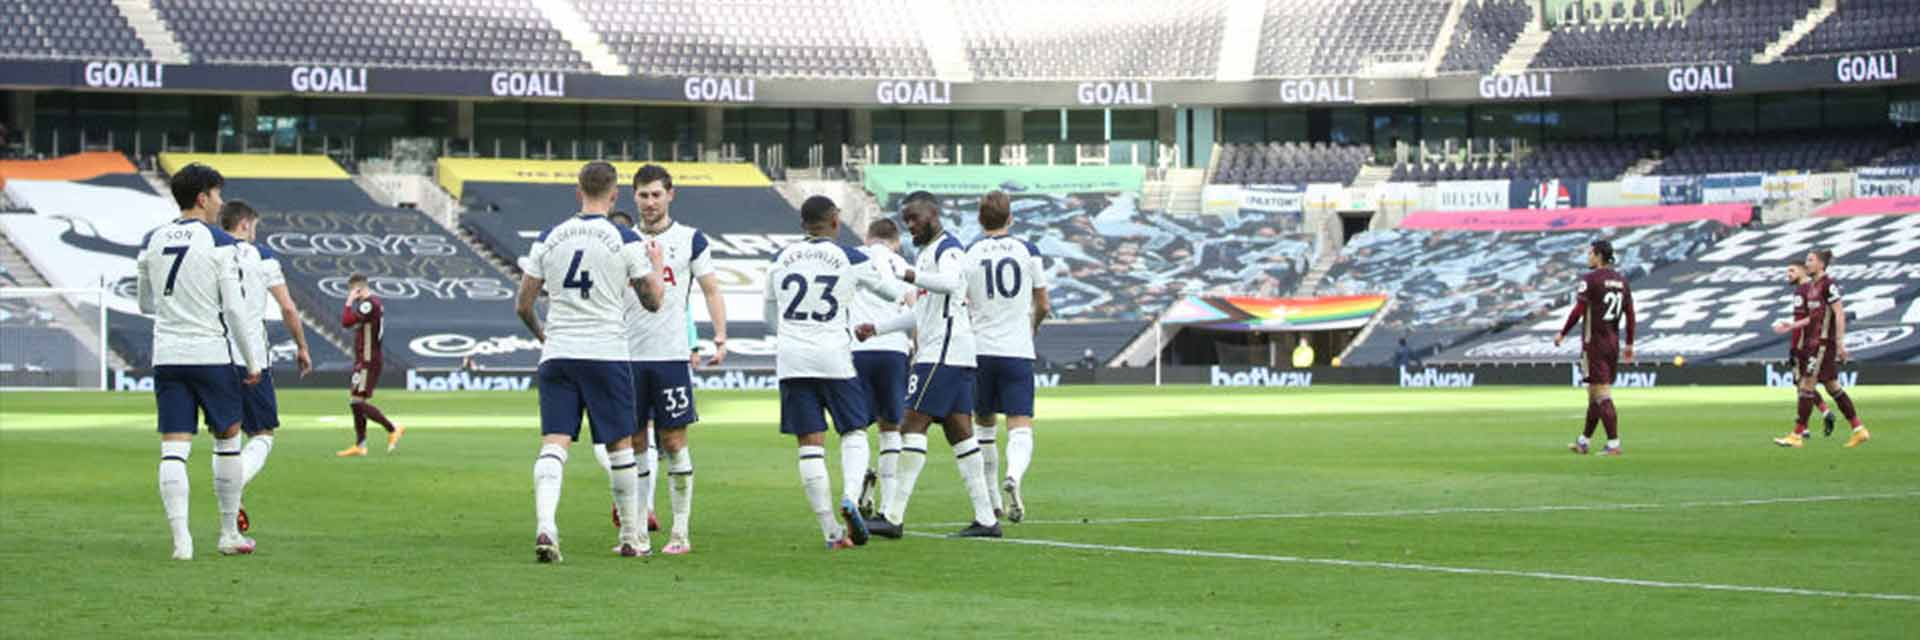 Photo of Tottenham Hotspurs celebrating a goal